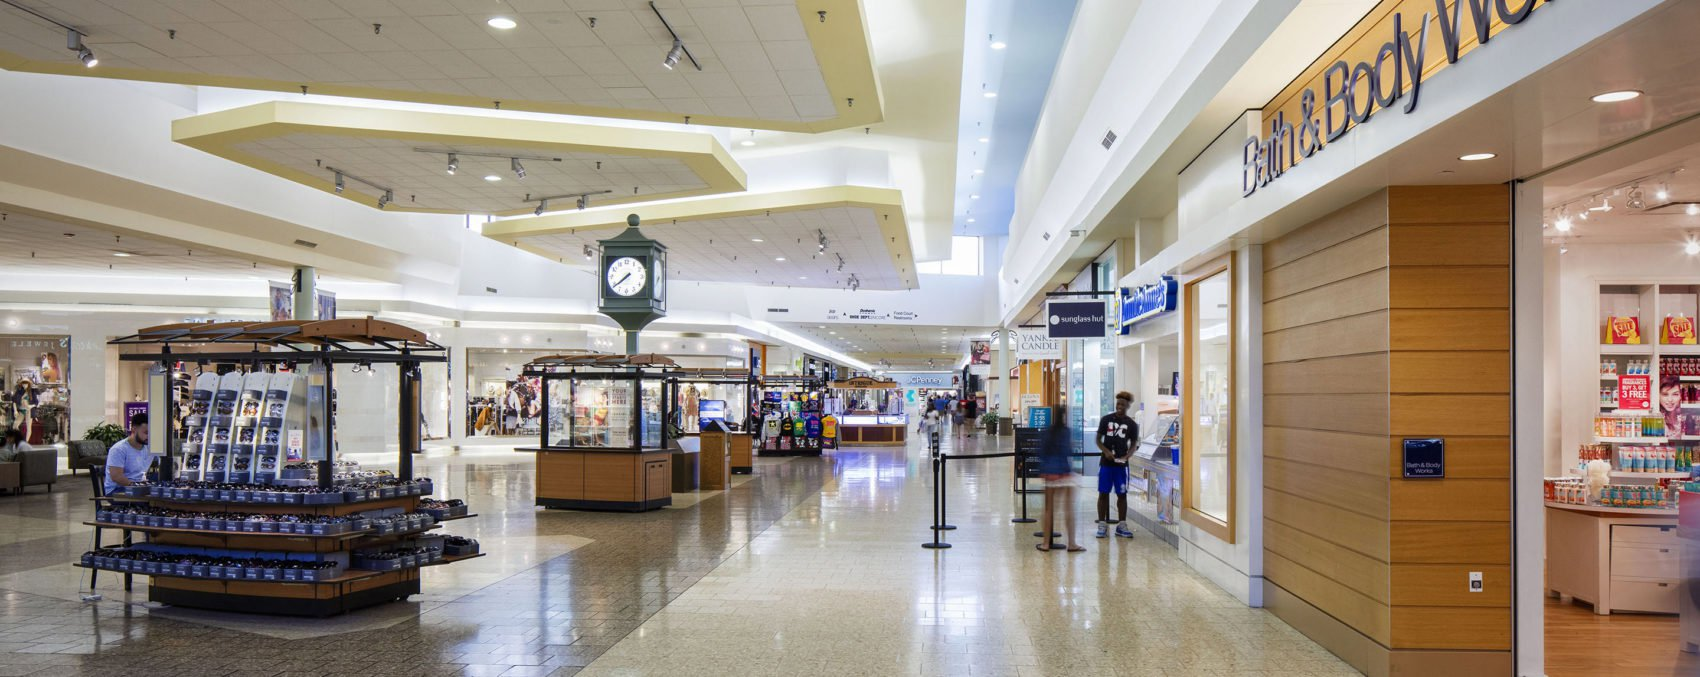 Monitoring in the mall: Improving kiosk sales performance with intelligent video